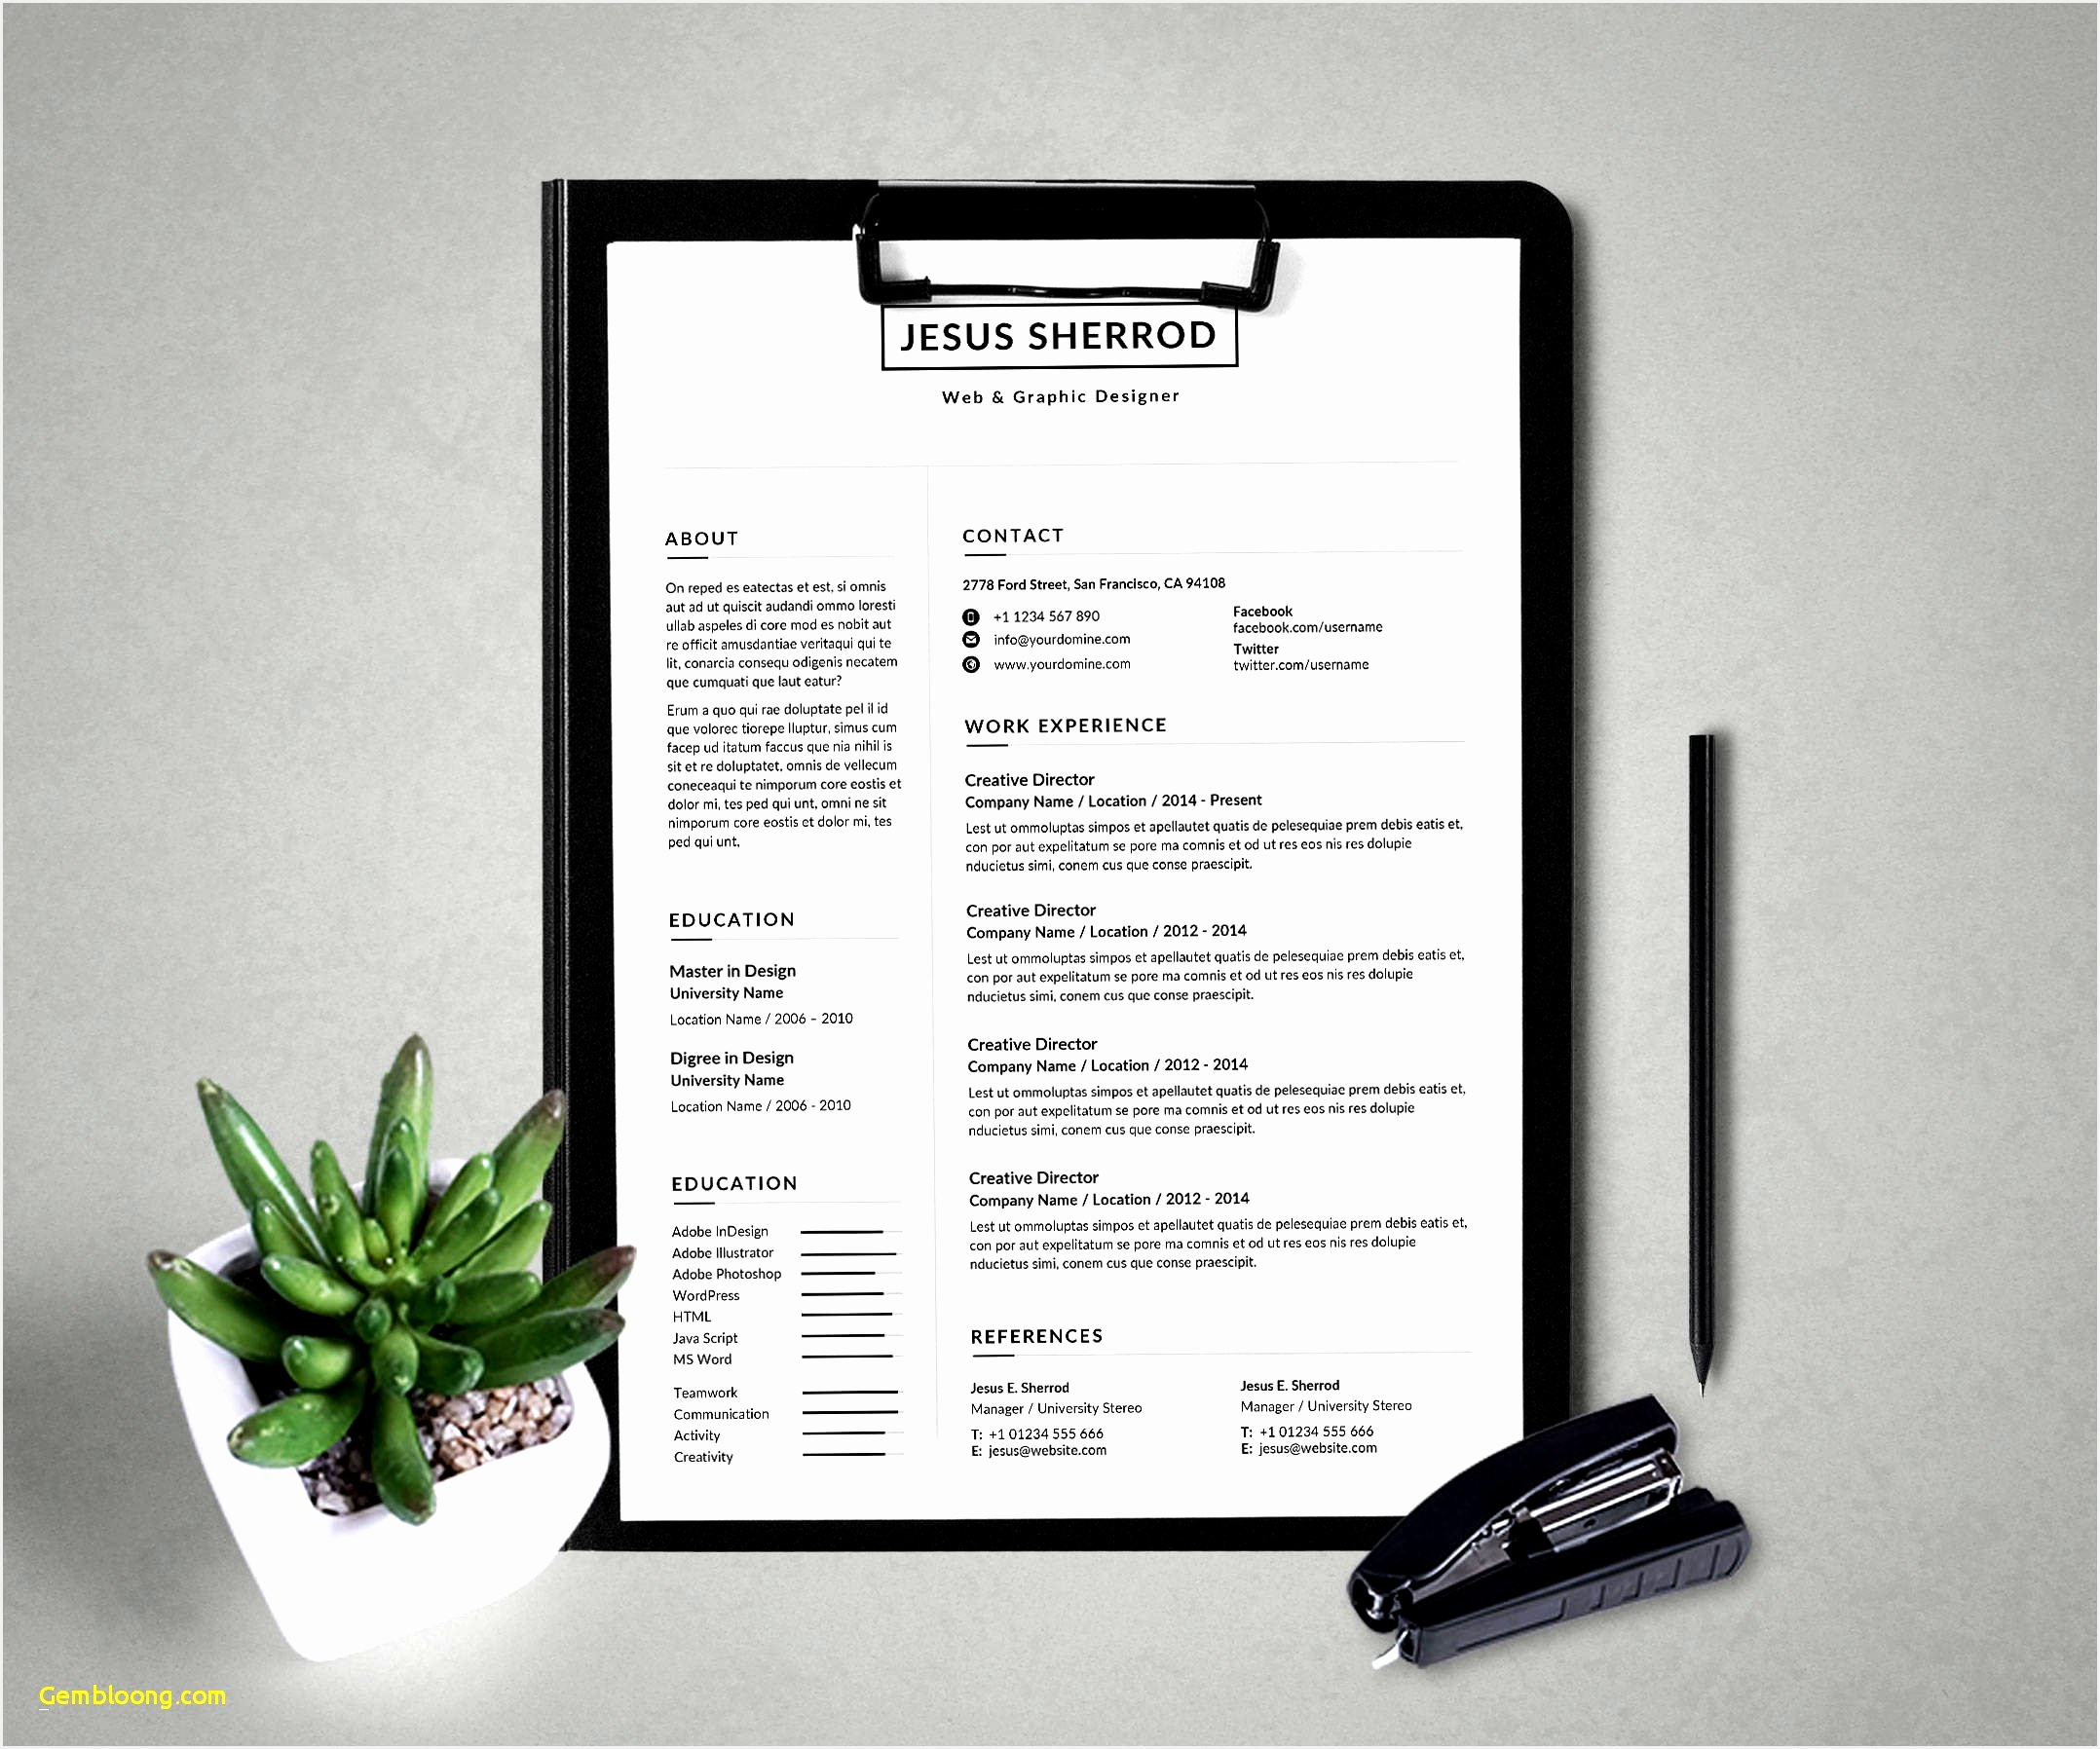 Clean Resume Template Word Download Professional Resume Templates for Microsoft Word New Creative Resume17962156